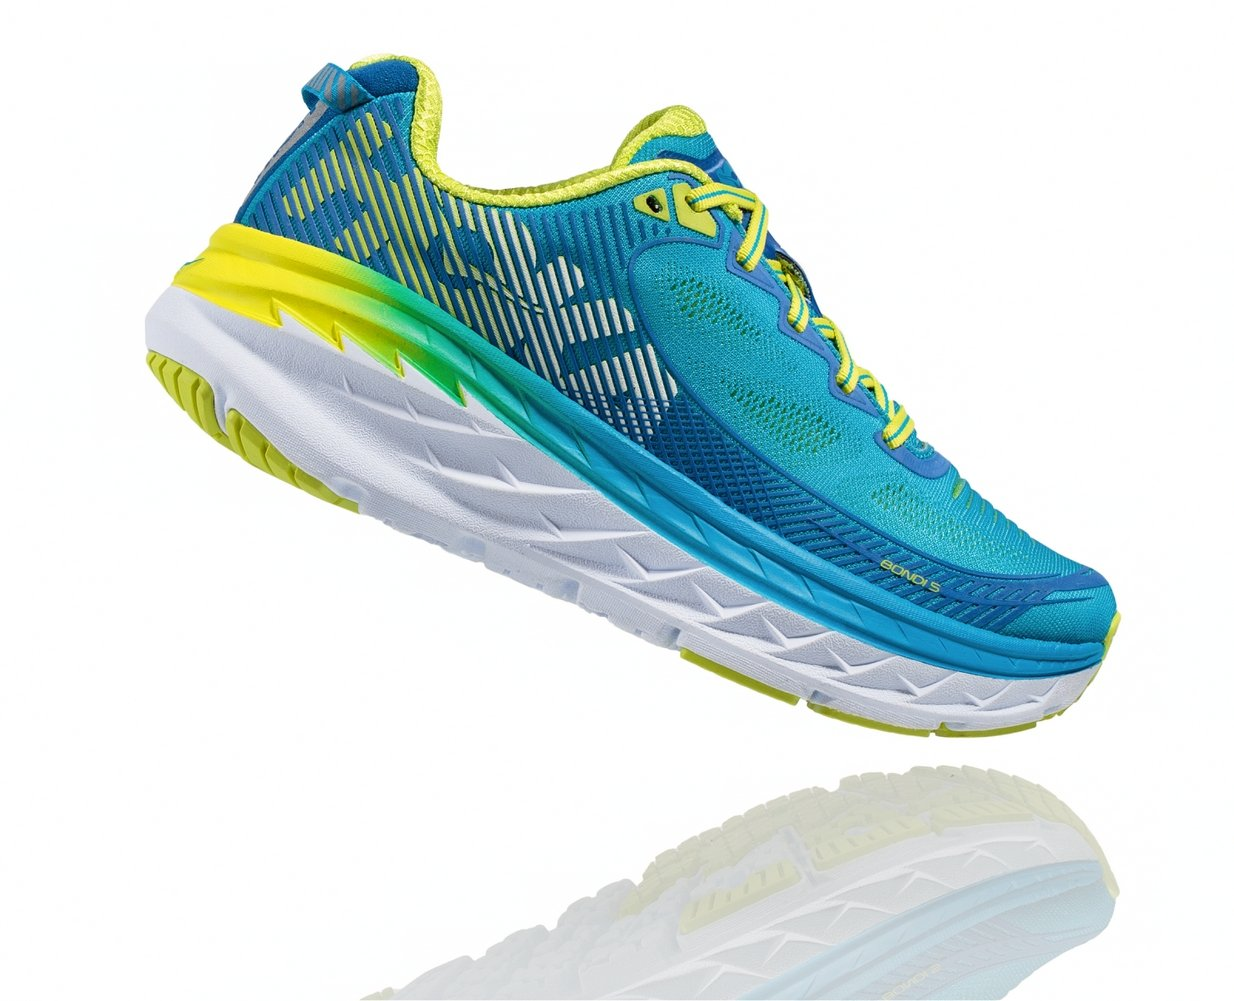 HOKA ONE ONE Bondi 5 Running Shoe - Blue Jewel/Acid - Womens - 6